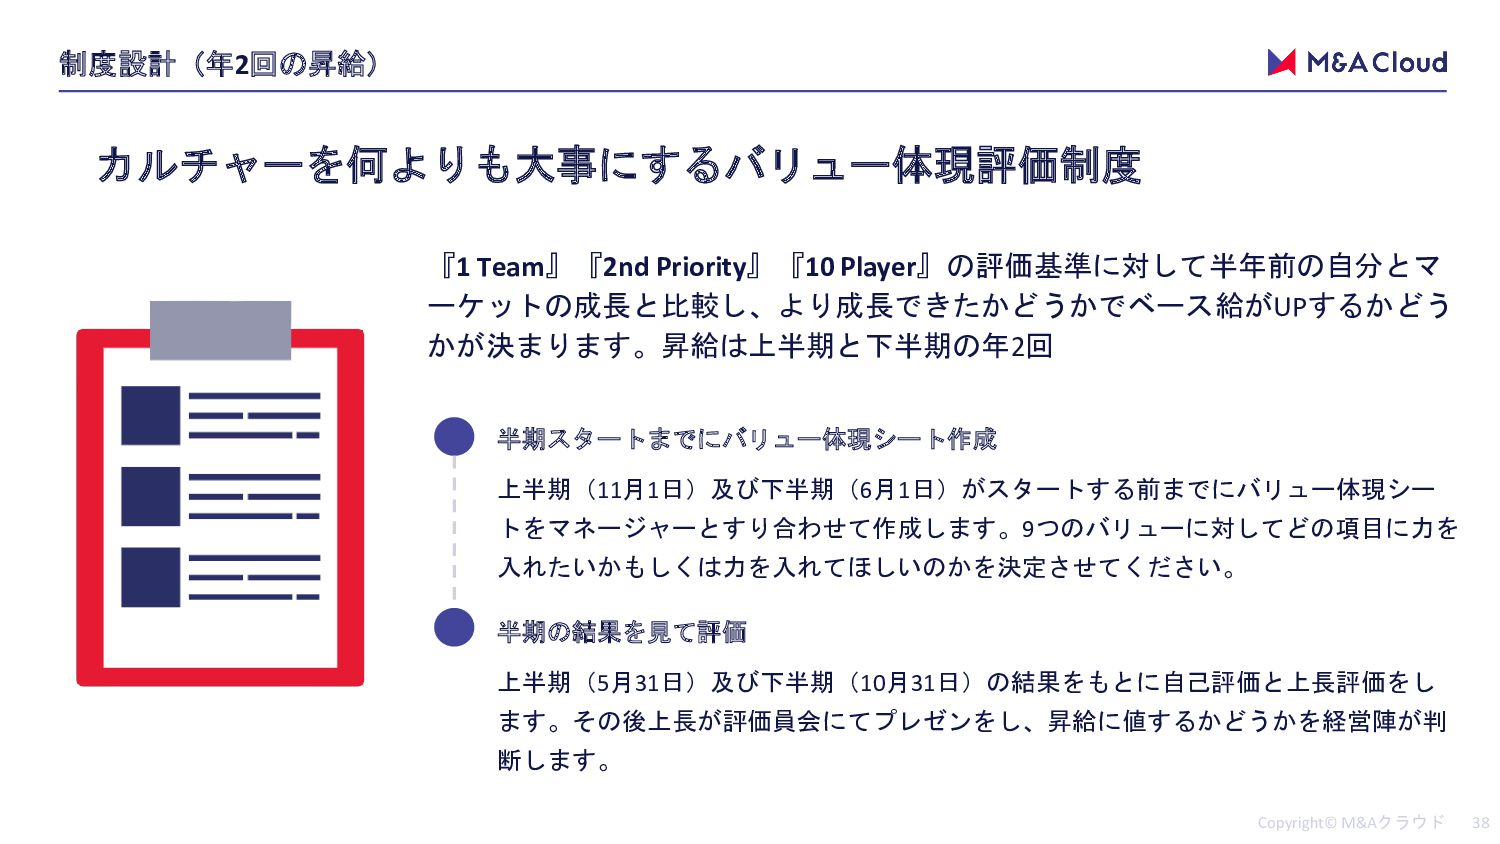 1 Team 2nd Priority 10 Player UP 2 11 1 6 1 ⾒ 9...